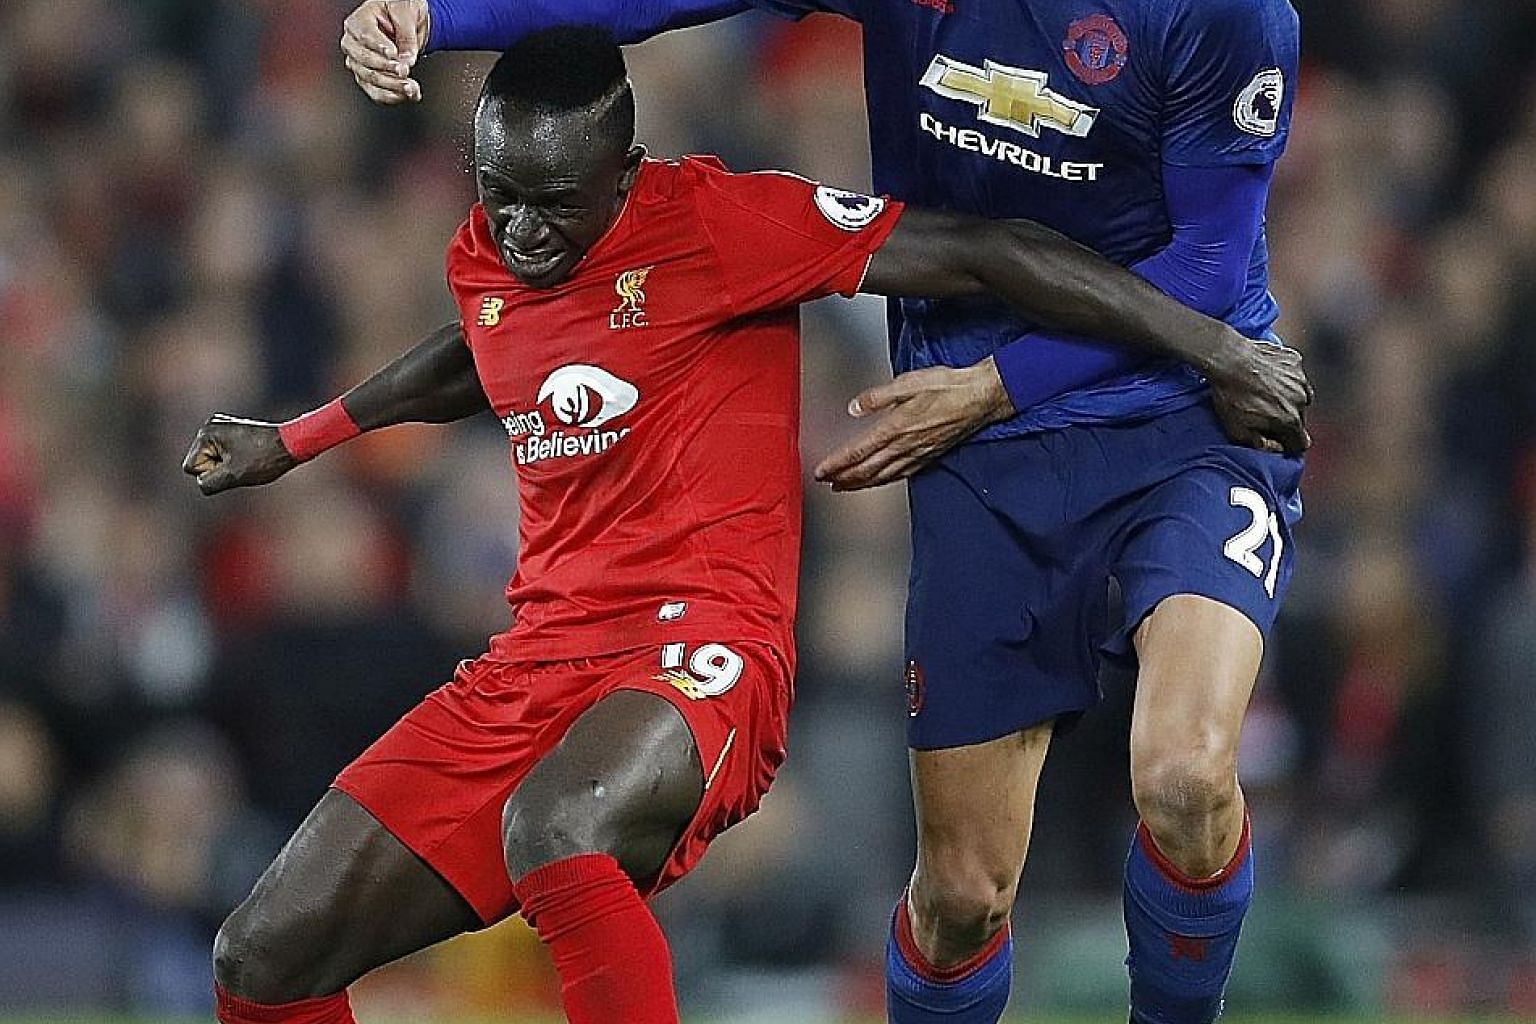 Manchester United's Marouane Fellaini trying to shake his much shorter Liverpool opponent Sadio Mane off the ball in the 0-0 draw on Monday. After their first clean sheet in the league this season, Jurgen Klopp would want his side to keep it tight at